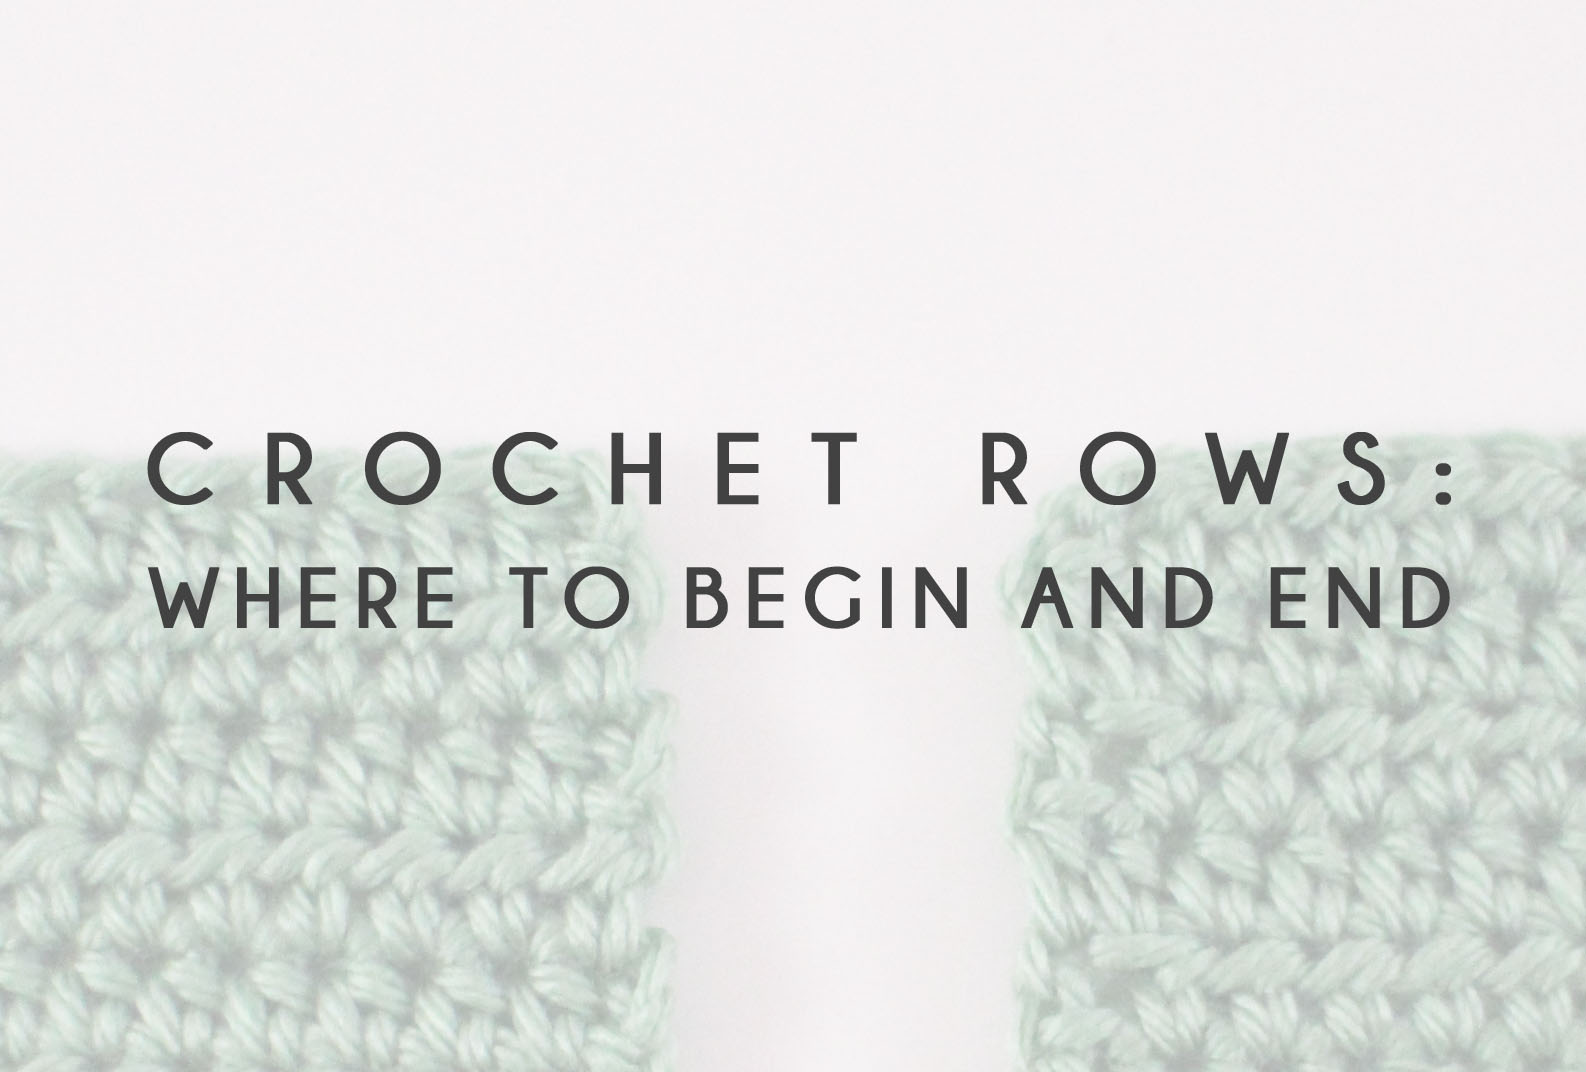 Crochet rows where to begin and end bhooked crochet knitting crochet rows where to begin and end ccuart Gallery